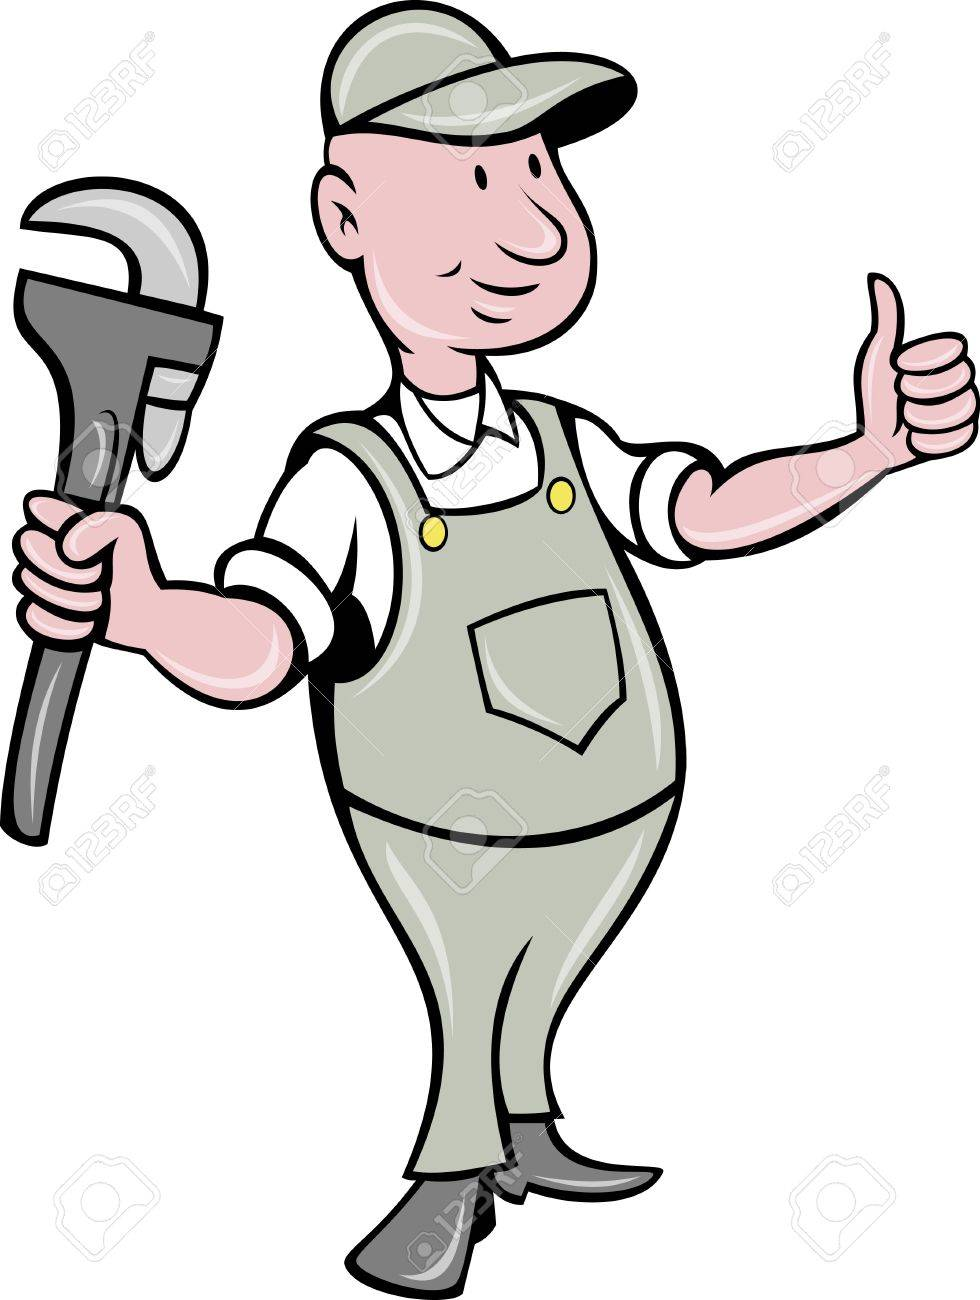 illustration of a plumber with monkey wrench thumbs up done in cartoon style on isolated background Stock Illustration - 9707319